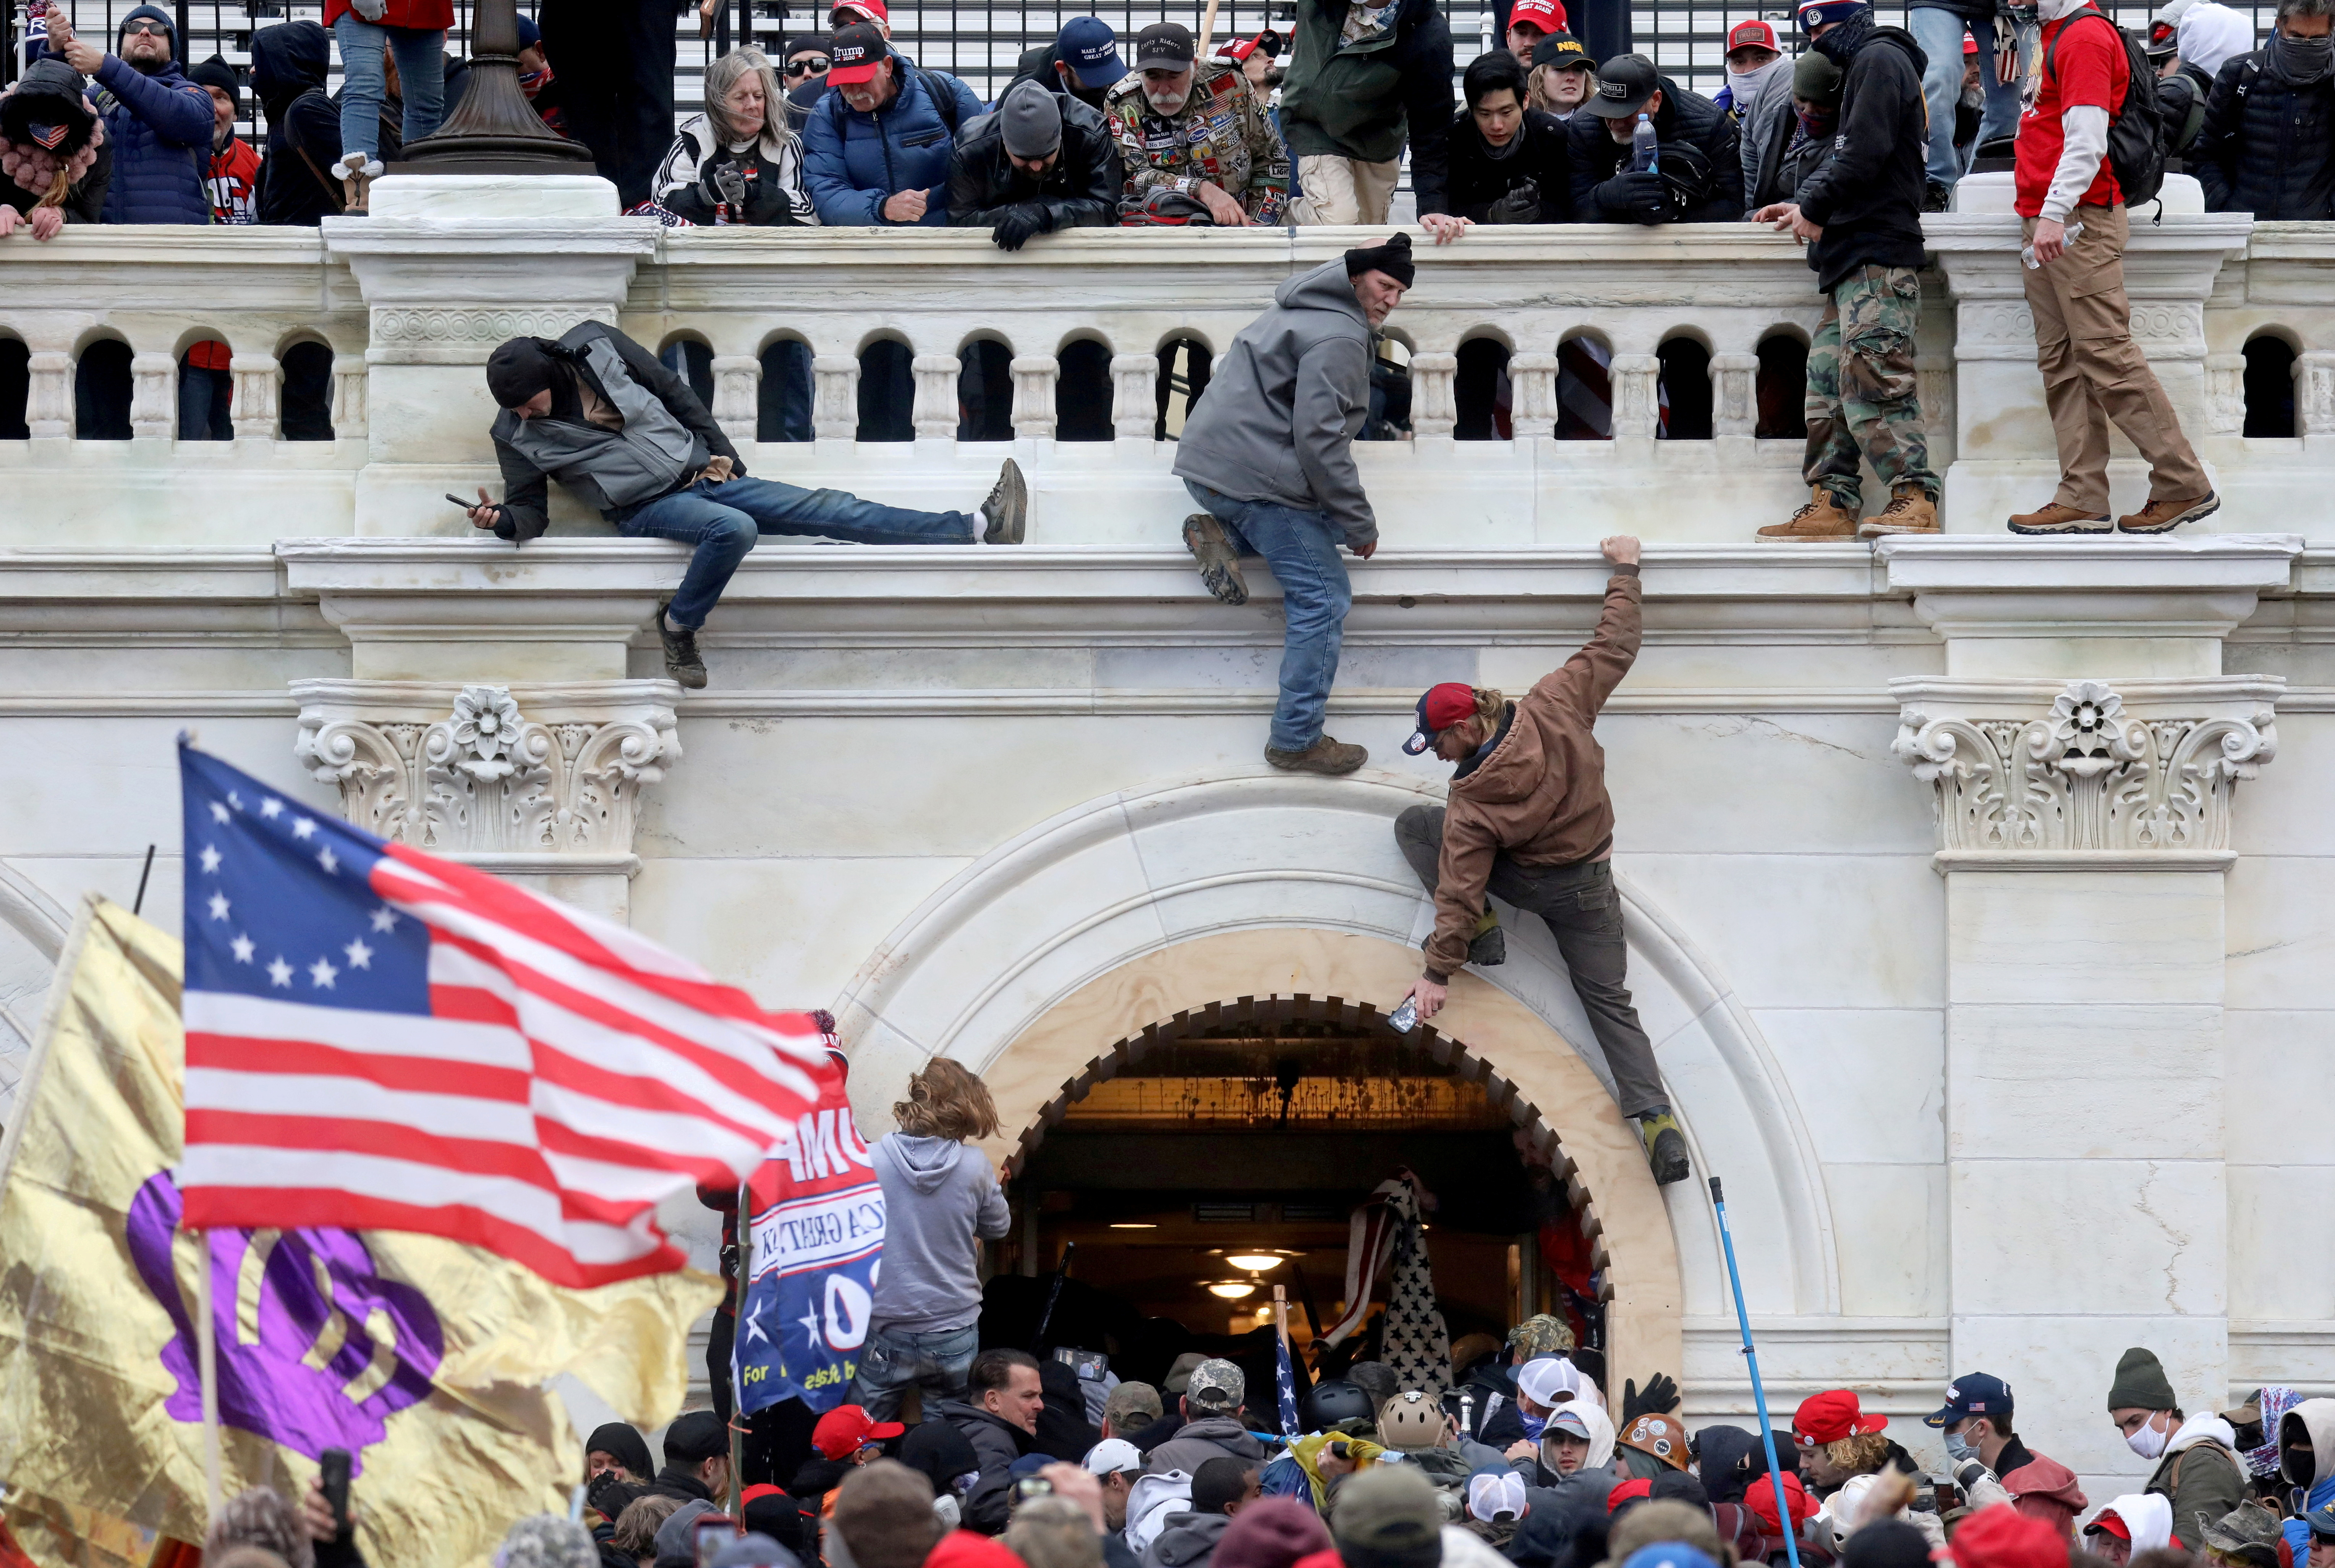 A mob of supporters of U.S. President Donald Trump fight with members of law enforcement at a door they broke open as they storm the U.S. Capitol Building in Washington, U.S., January 6, 2021. REUTERS/Leah Millis/File Photo